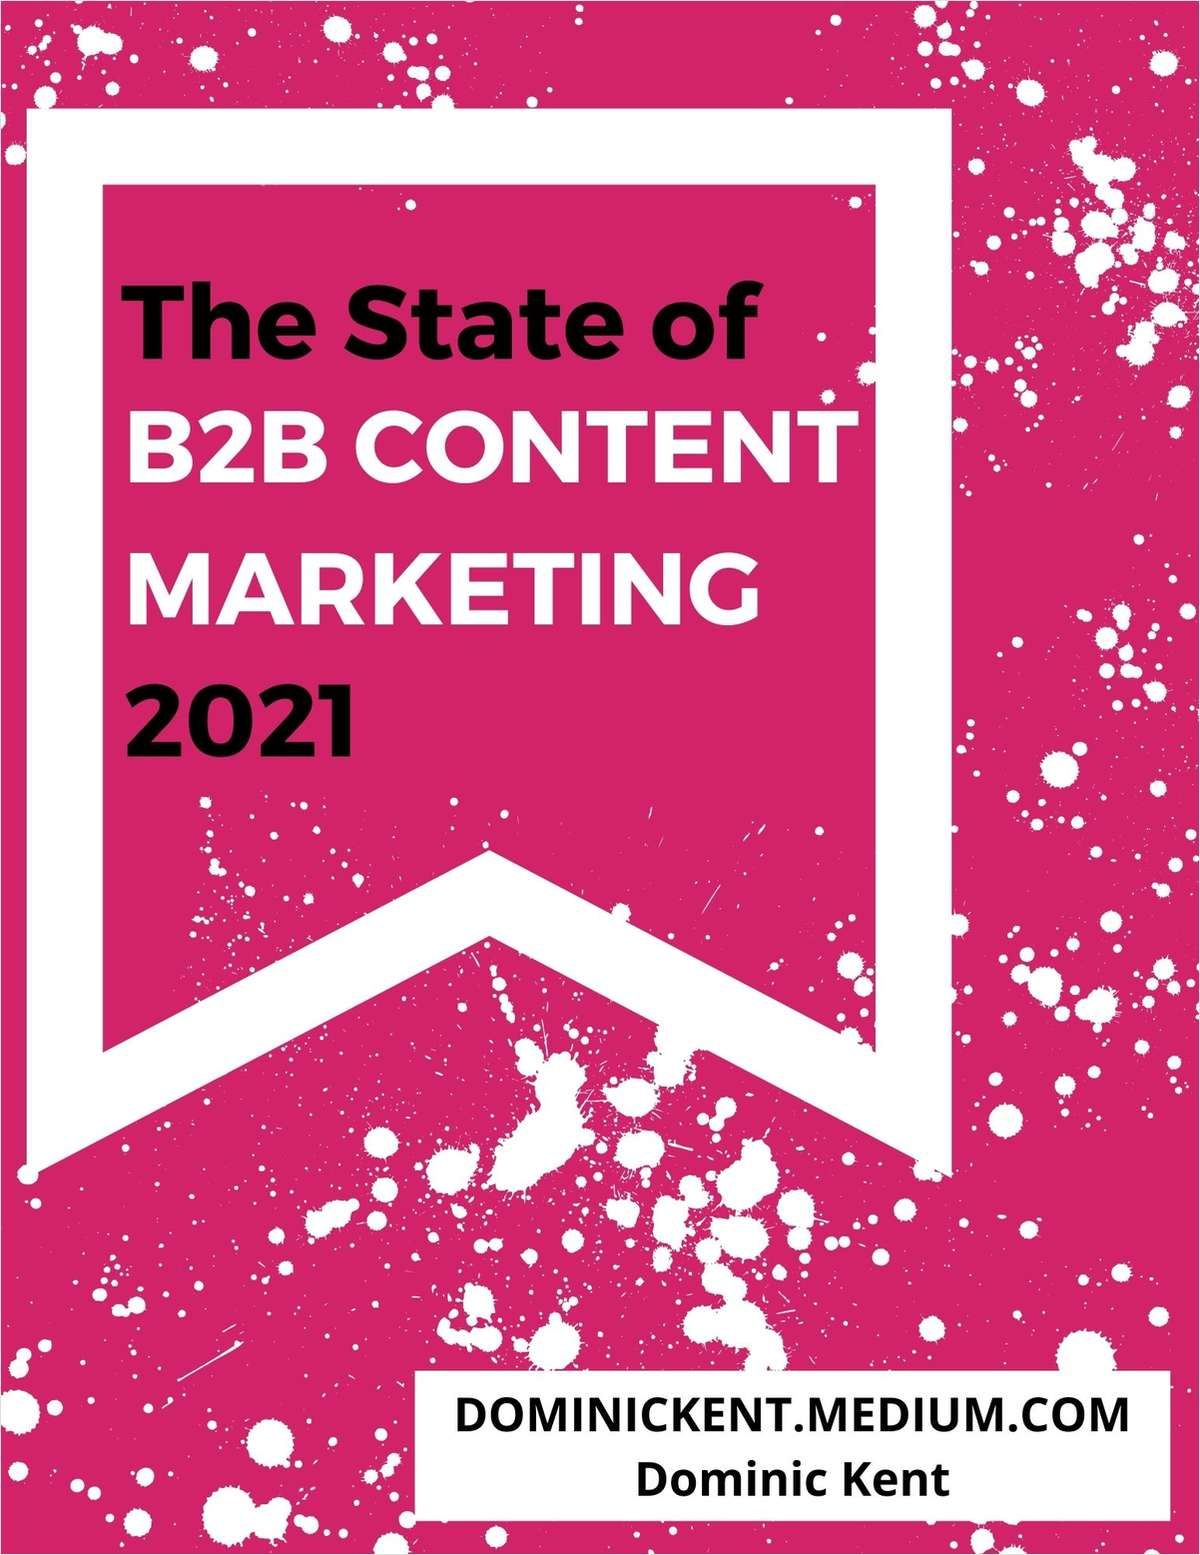 The State of B2B Content Marketing 2021